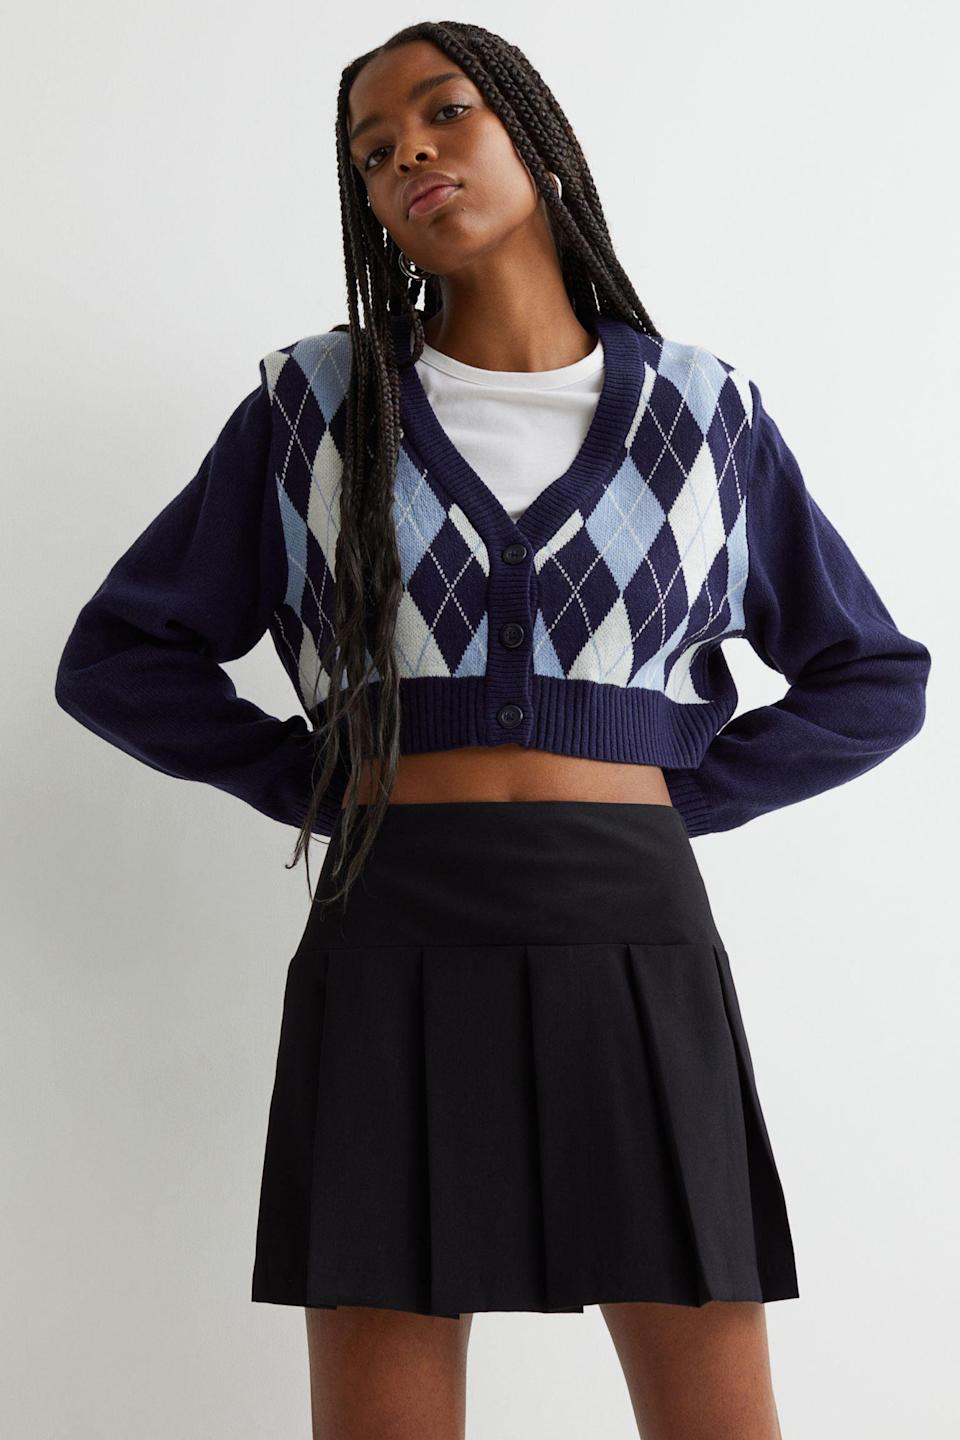 <p>This patterned <span>H&amp;M Short Cardigan</span> ($15, originally $18) is a great layering piece as temperatures start to dip. Throw it over a tank top or a tennis skirt ensemble, and you'll look effortlessly stylish.</p>